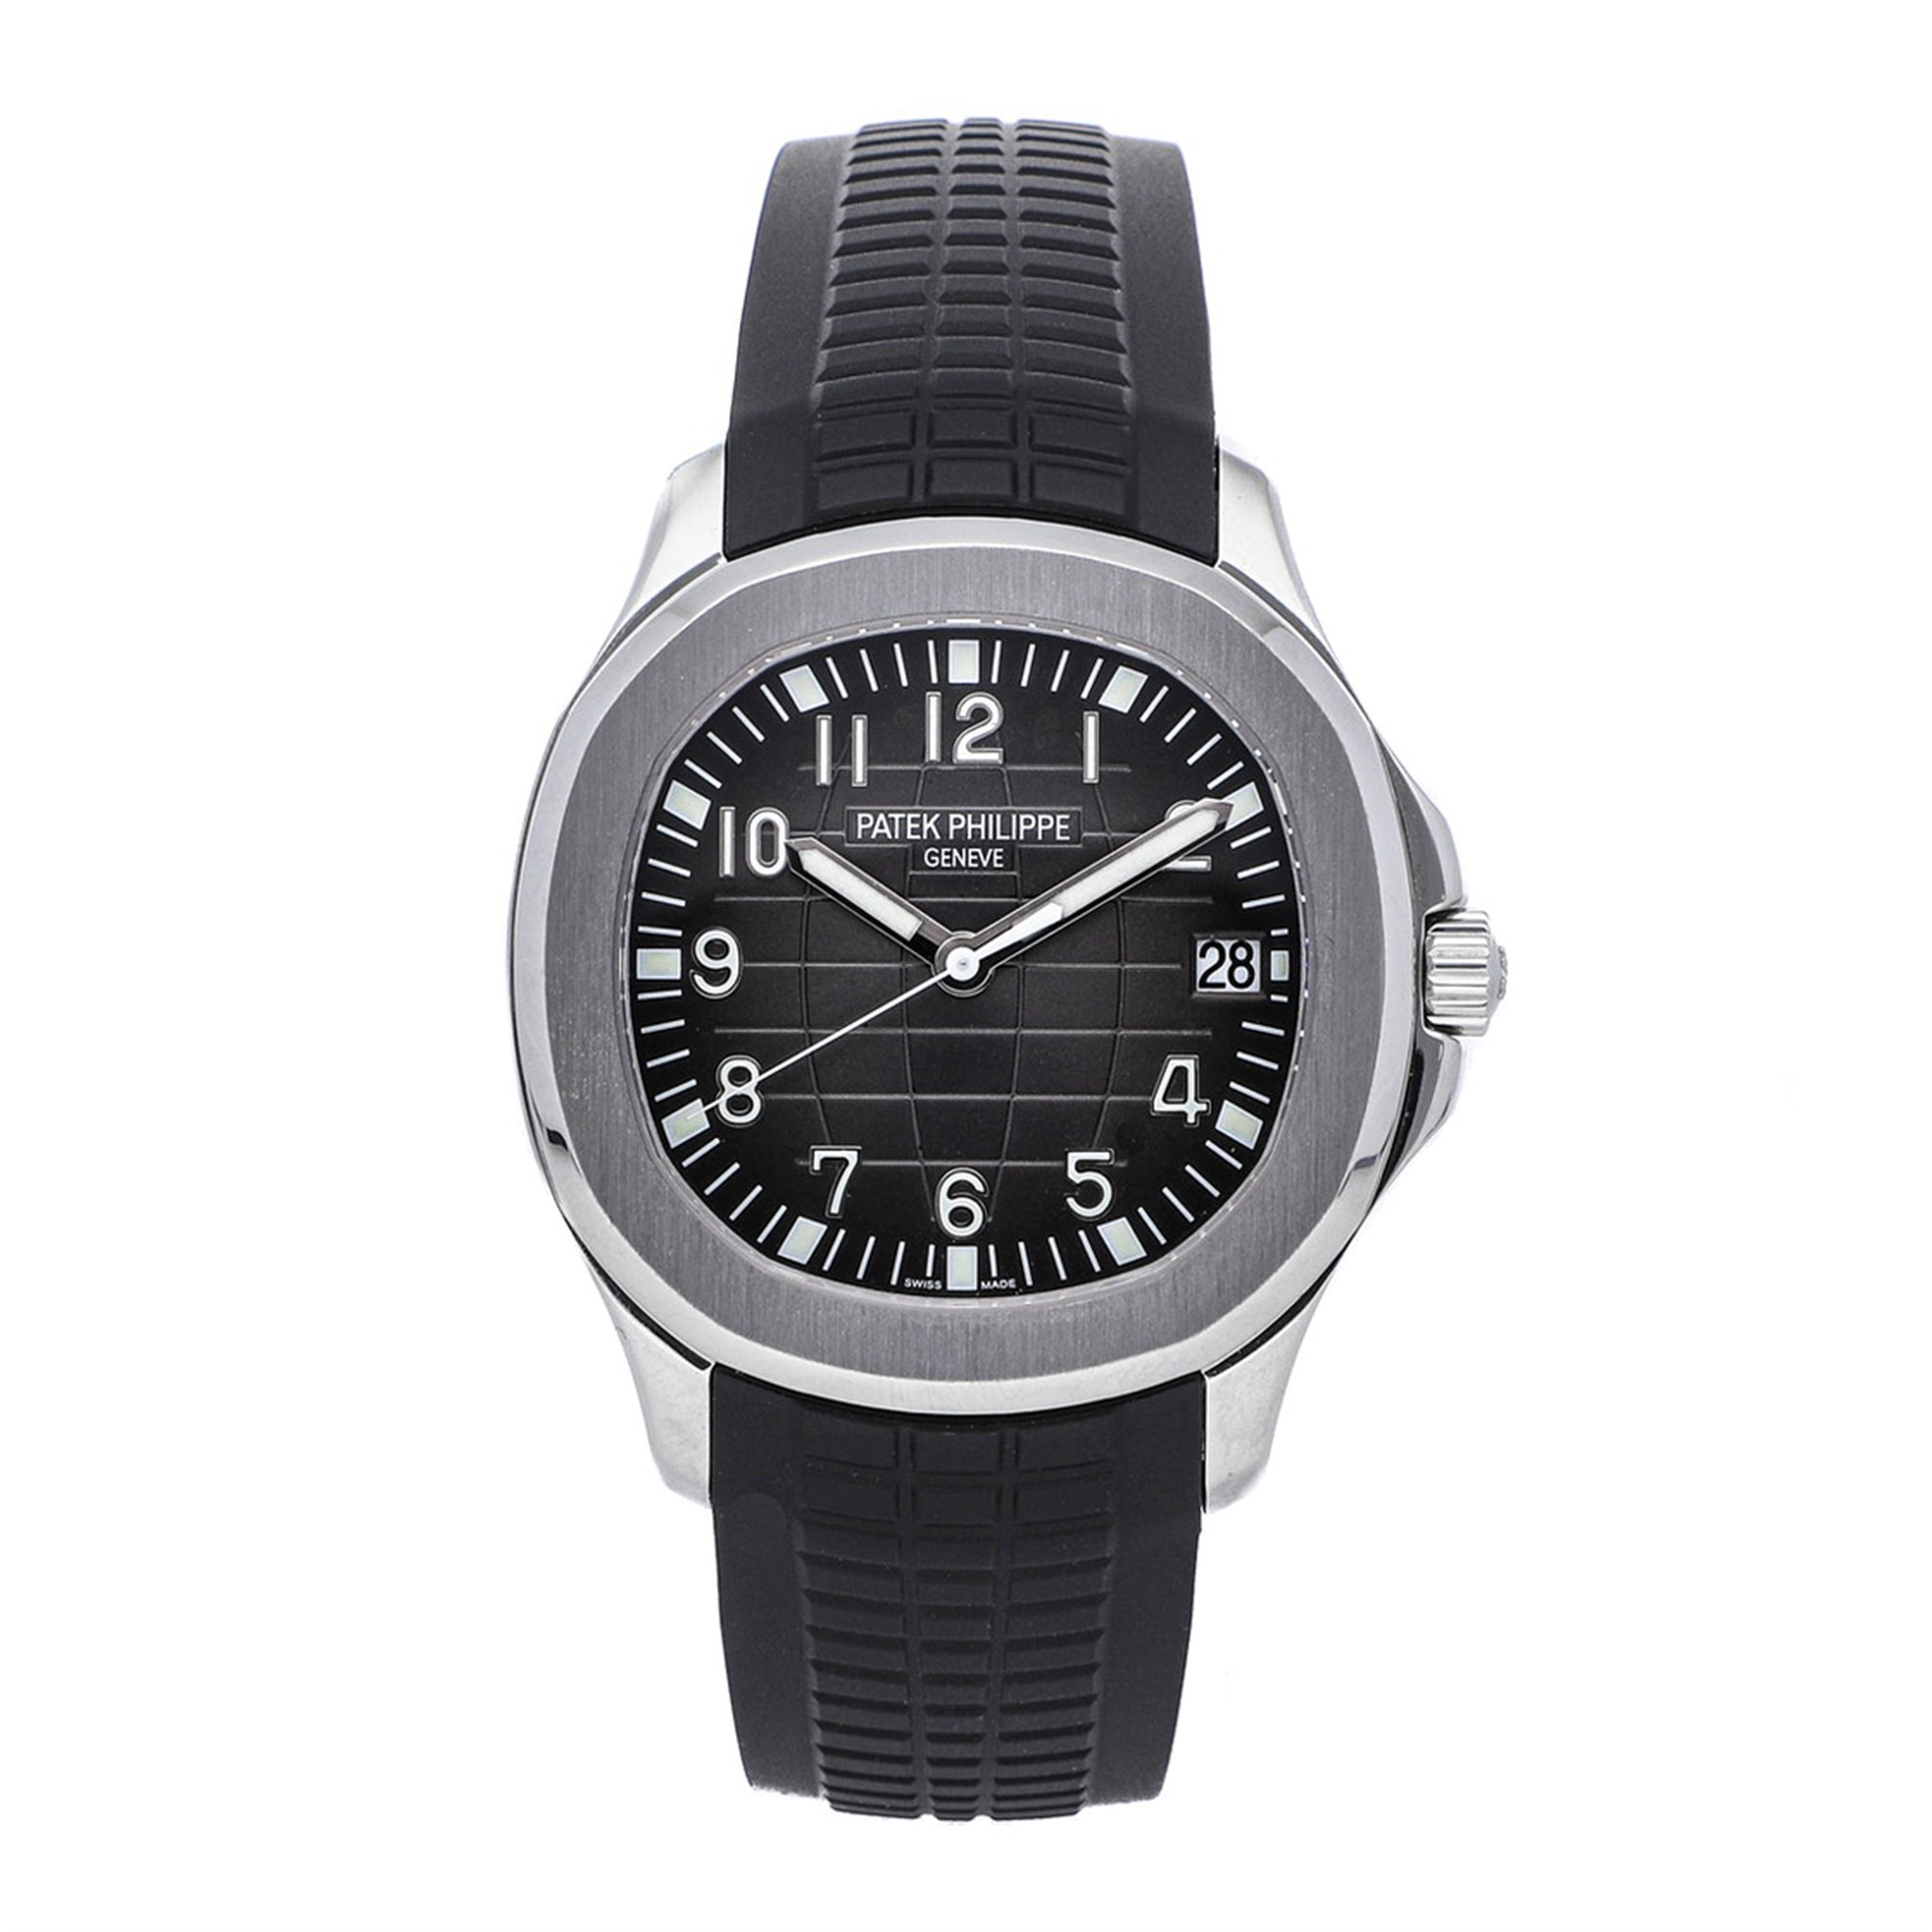 Patek Philippe Aquanaut Stainless Steel 5167A-001